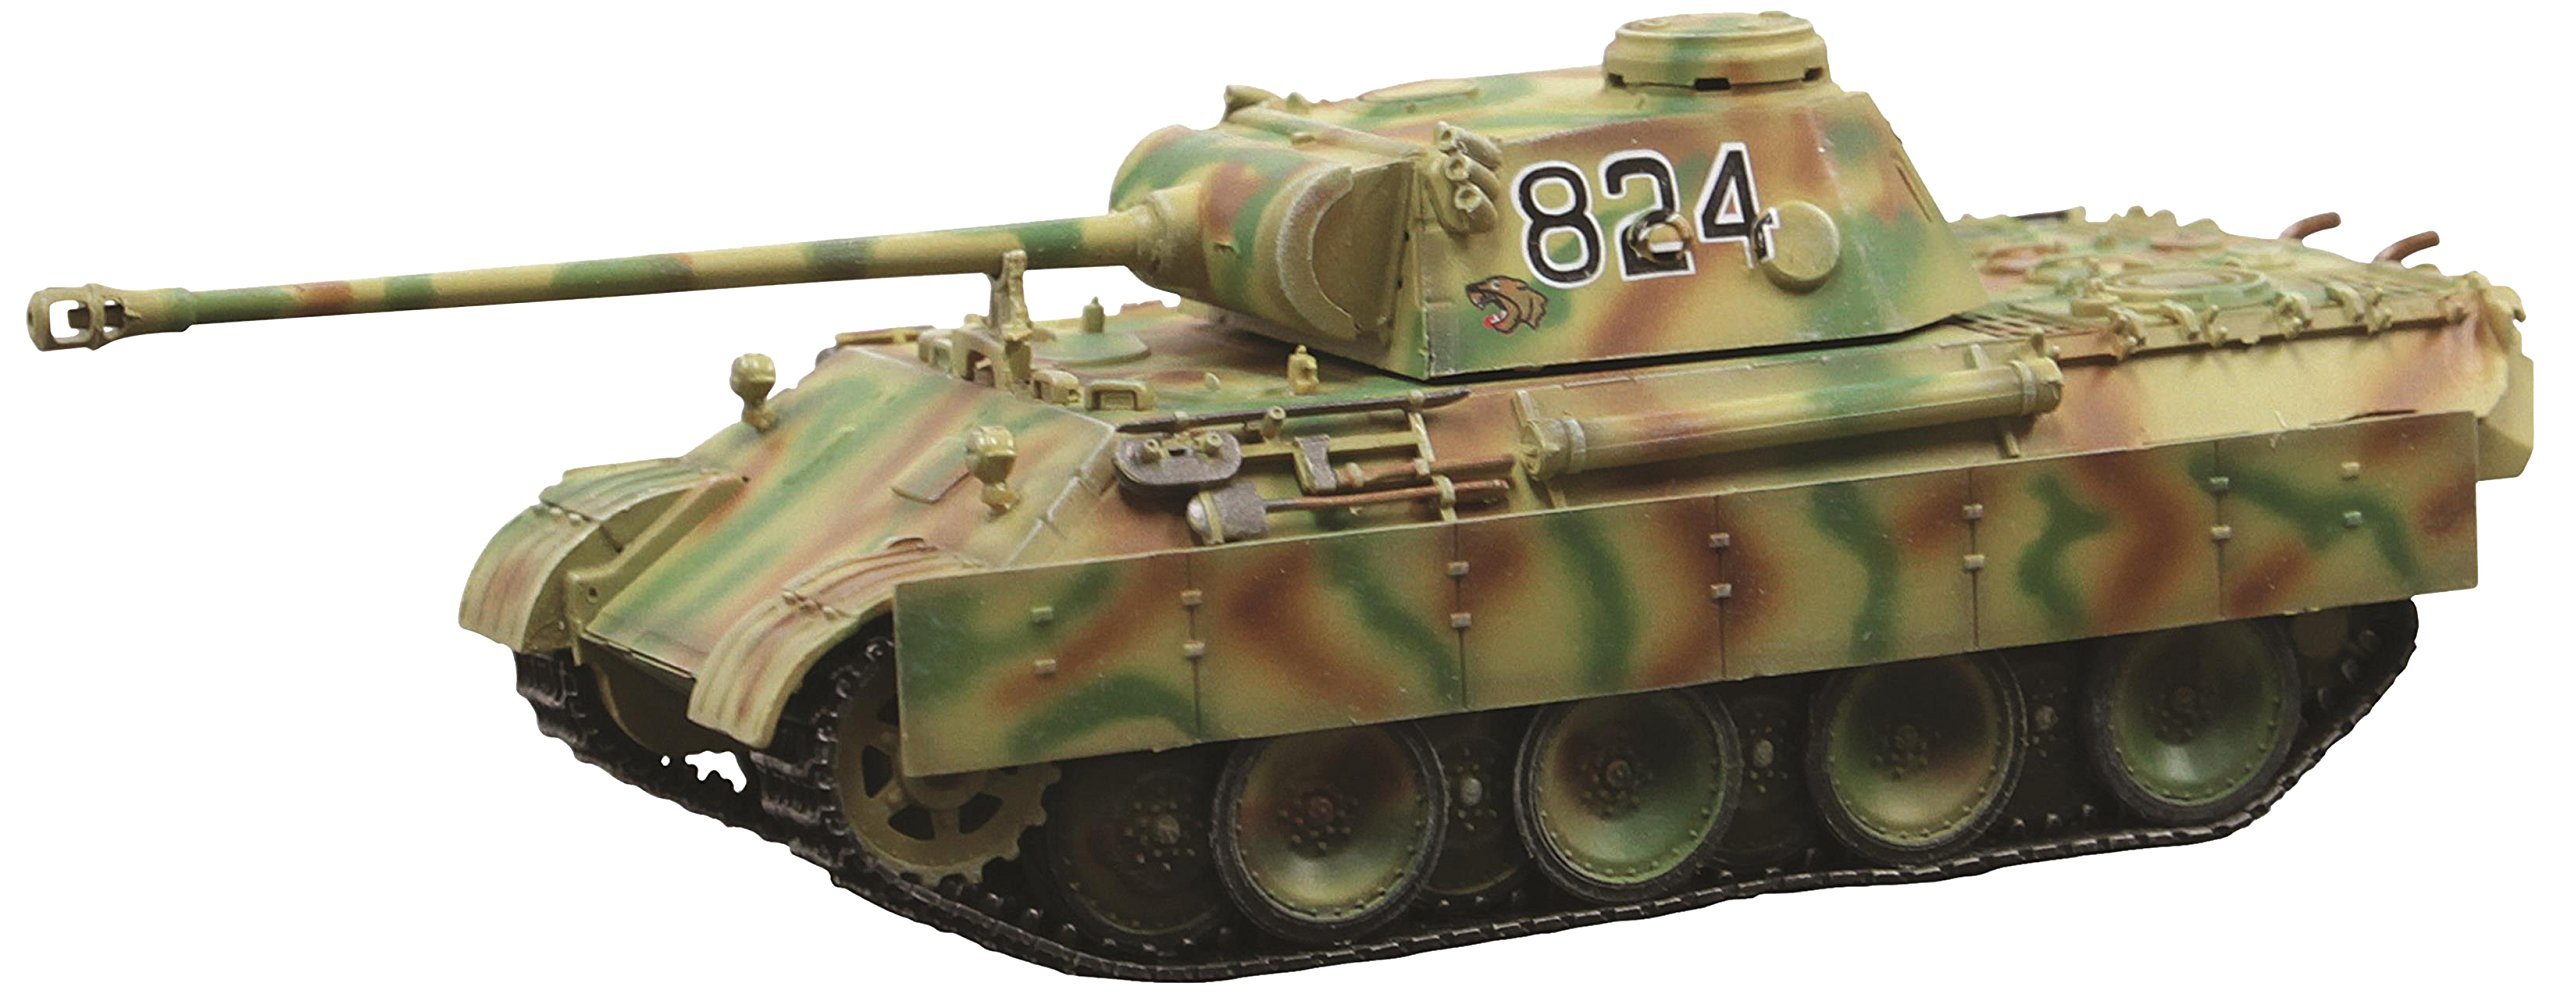 Dragon Models Panther Ausf.D Early Production 8/Pz.Abt.52, Pz.Rgt.39 Kursk 1943 Vehicle (1/72 Scale)